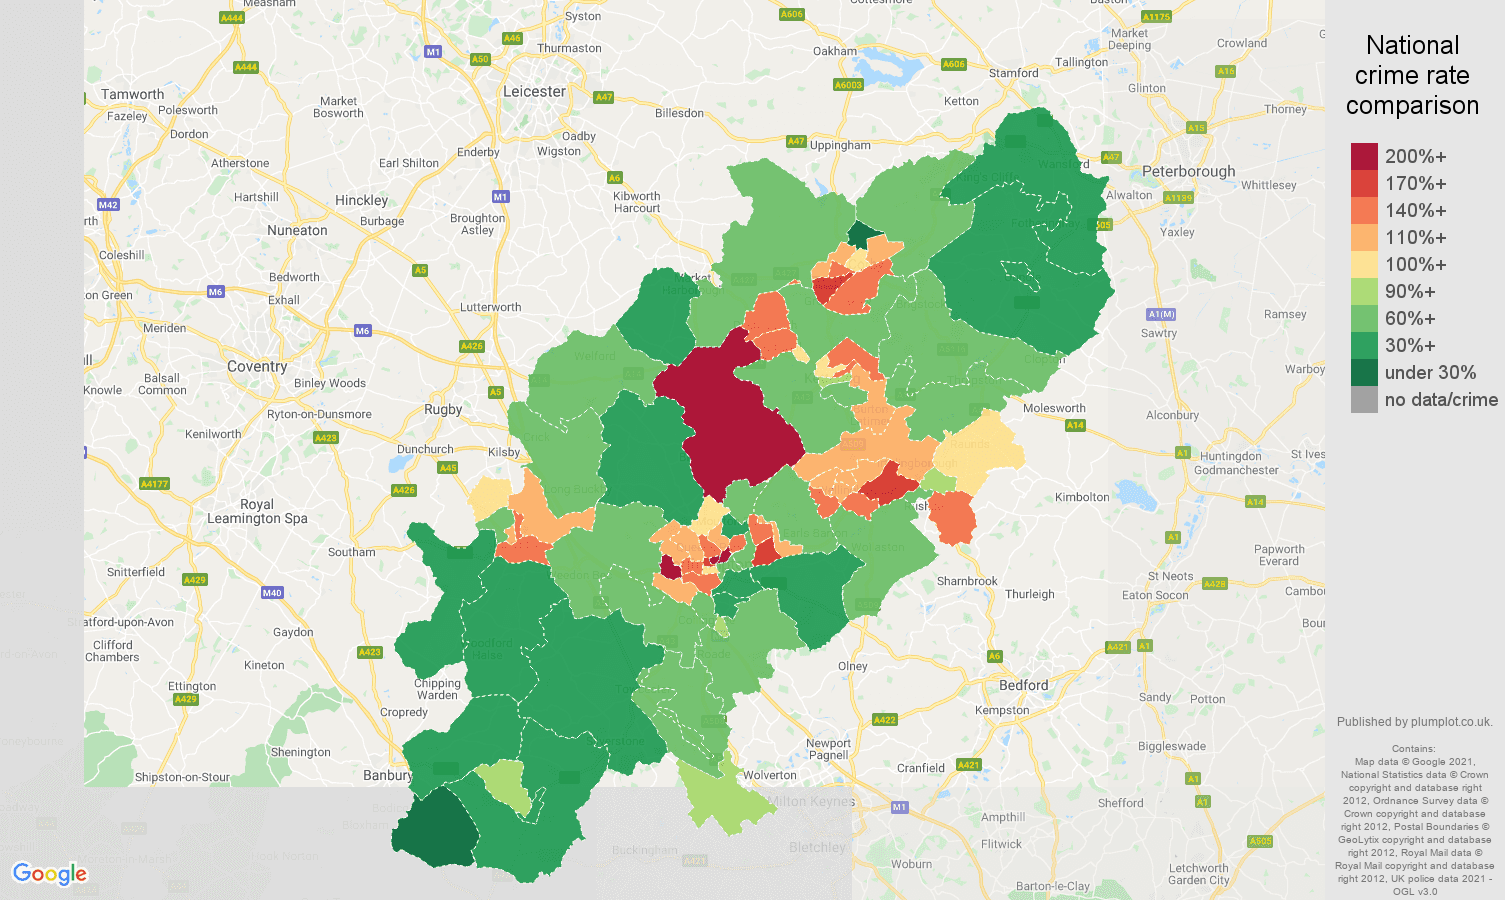 Northamptonshire antisocial behaviour crime rate comparison map